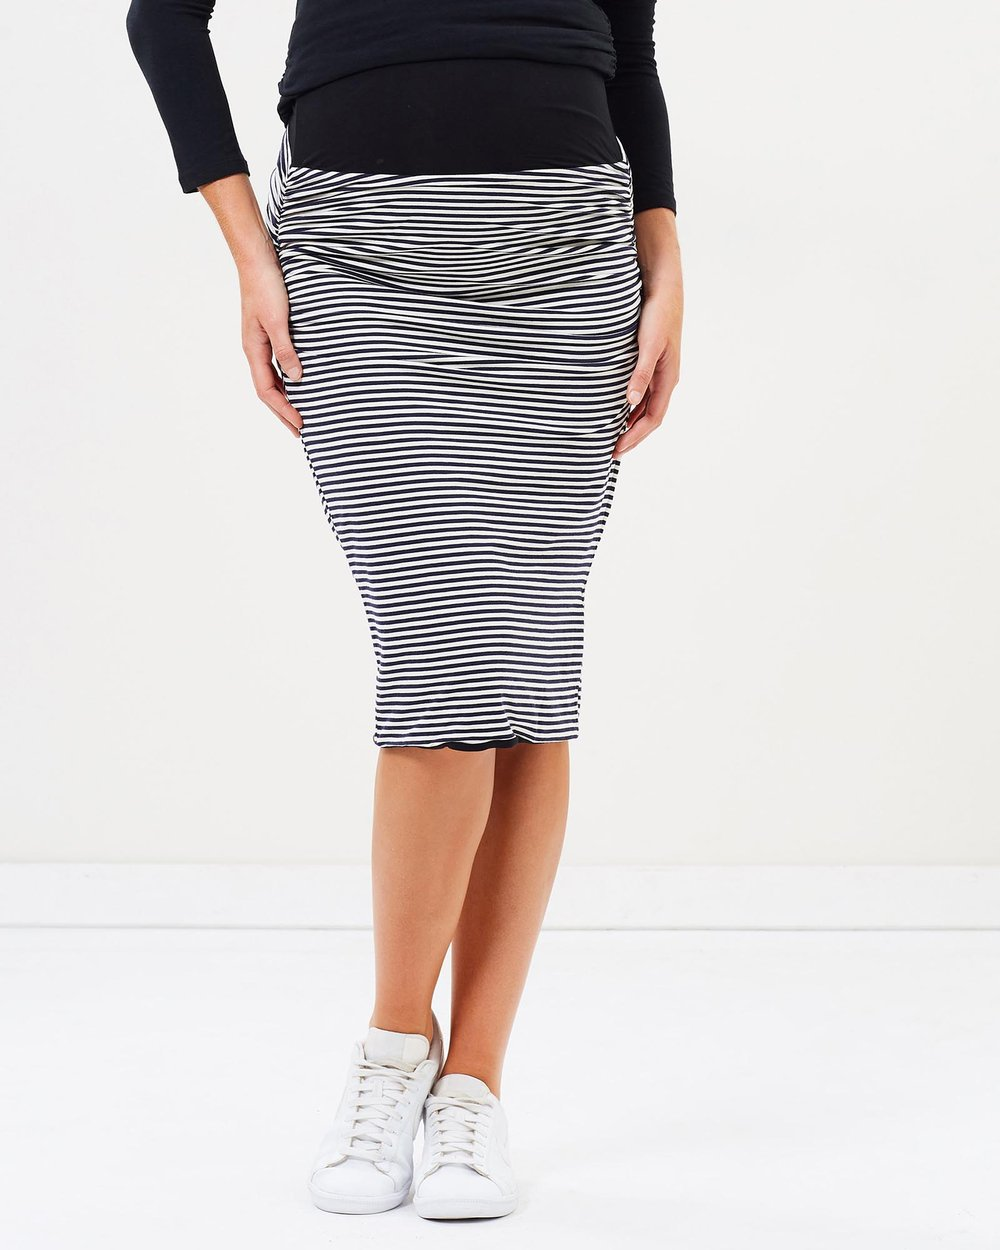 4d5a4c168249f Reversible Maternity Pencil Skirt in Stripes by Angel Maternity Online |  THE ICONIC | Australia